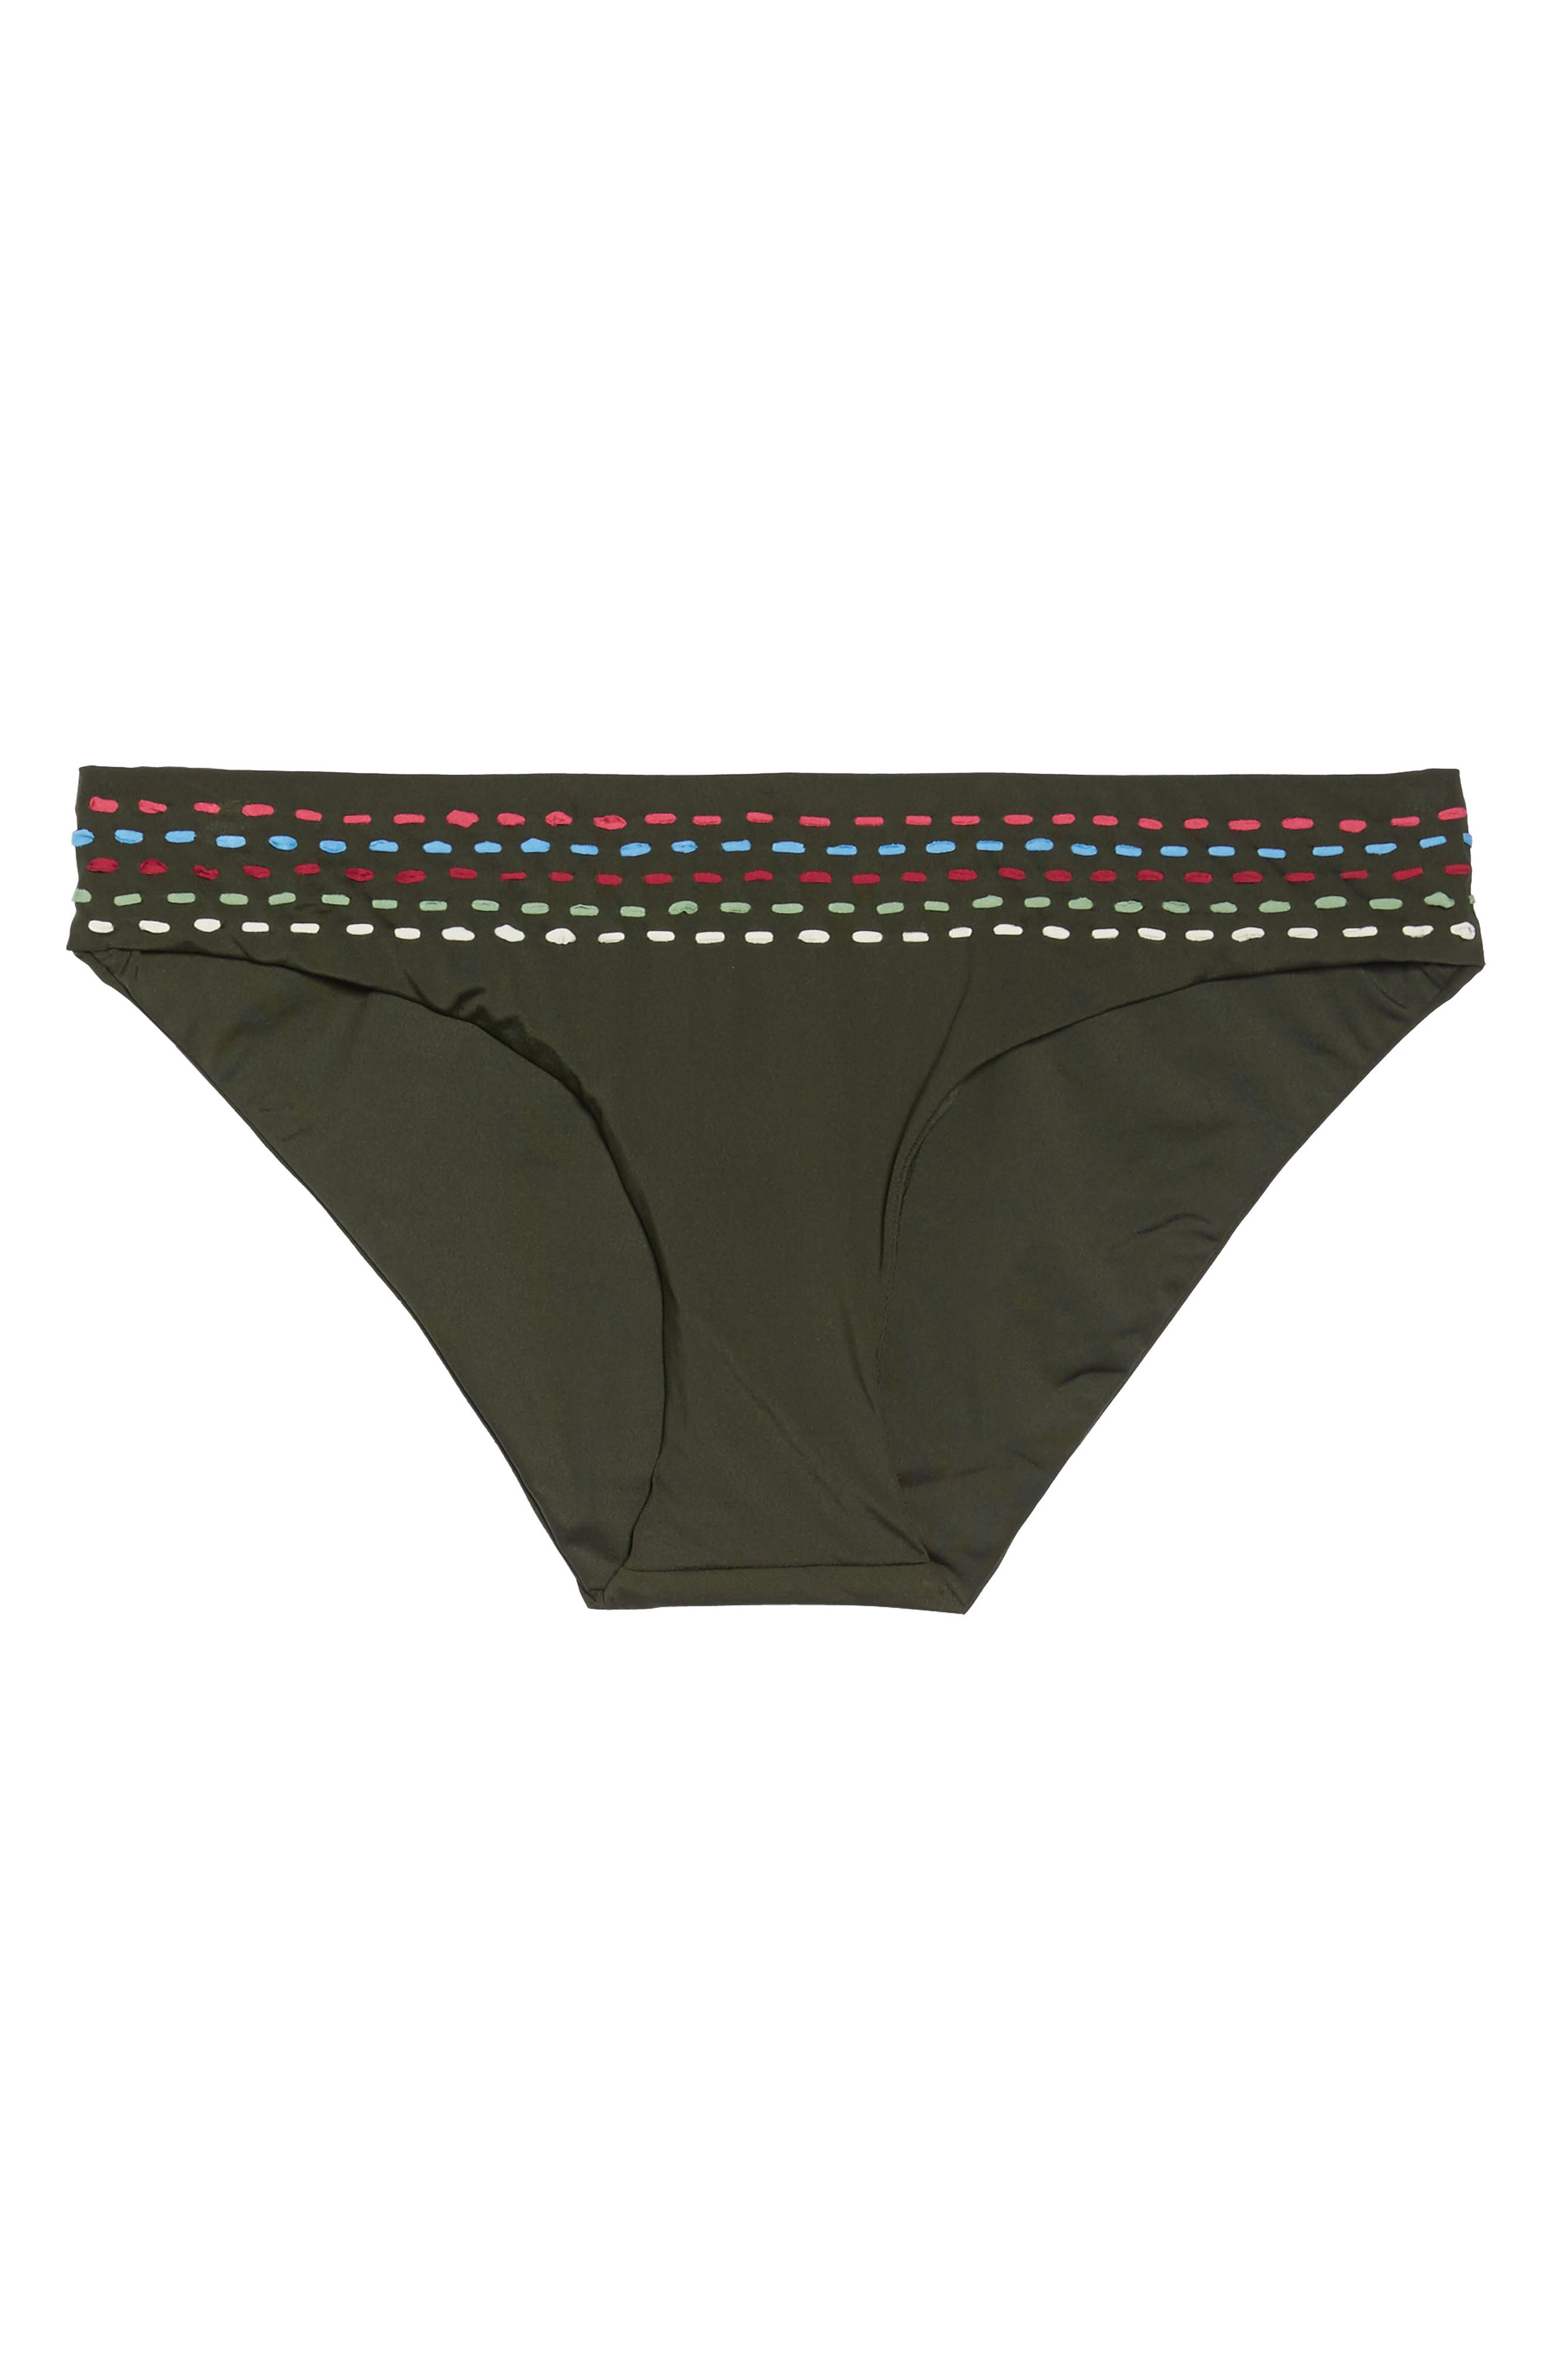 Quest American Bikini Bottoms,                             Alternate thumbnail 6, color,                             Bay Leaf